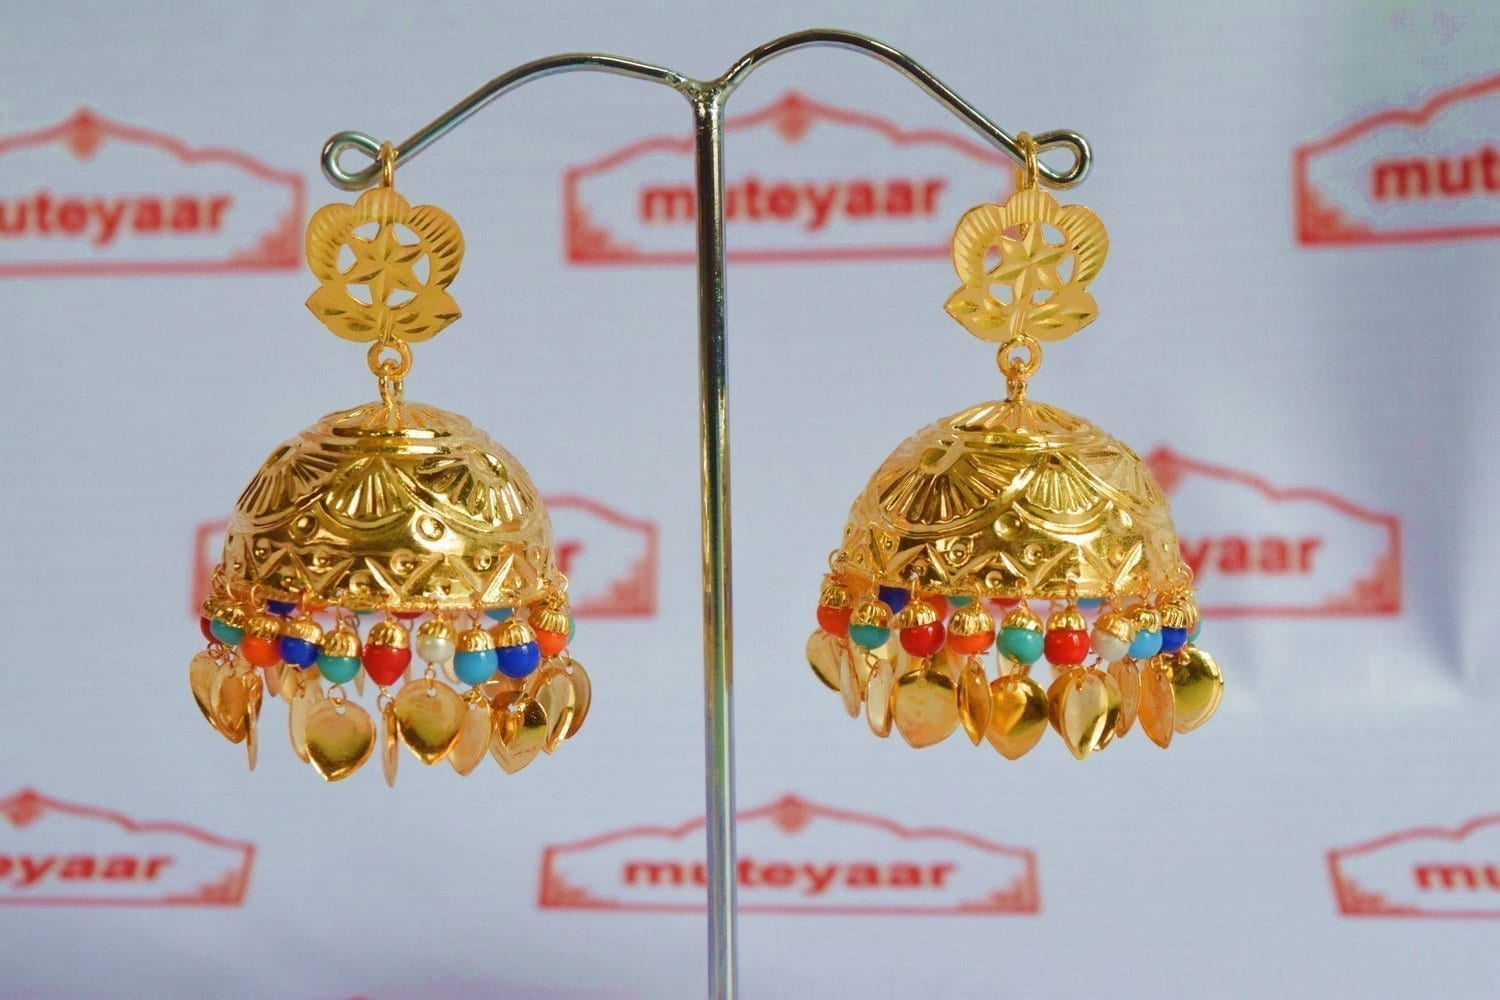 Big Lotan Jhumka Earrings Handmade 24 ct. Gold Plated Traditional Punjabi Jhumki J0396 2